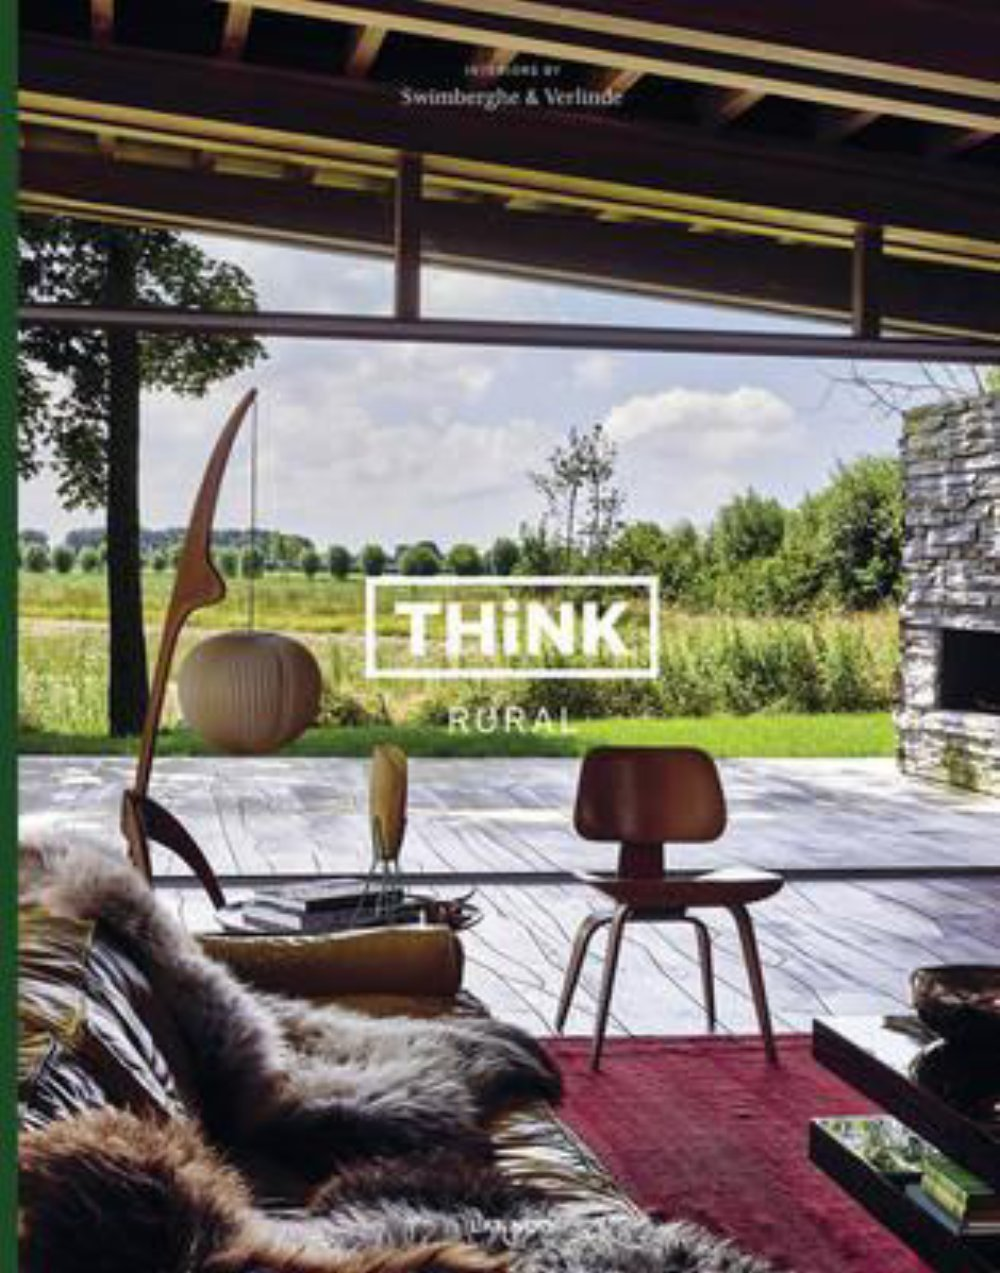 THINK - RURAL